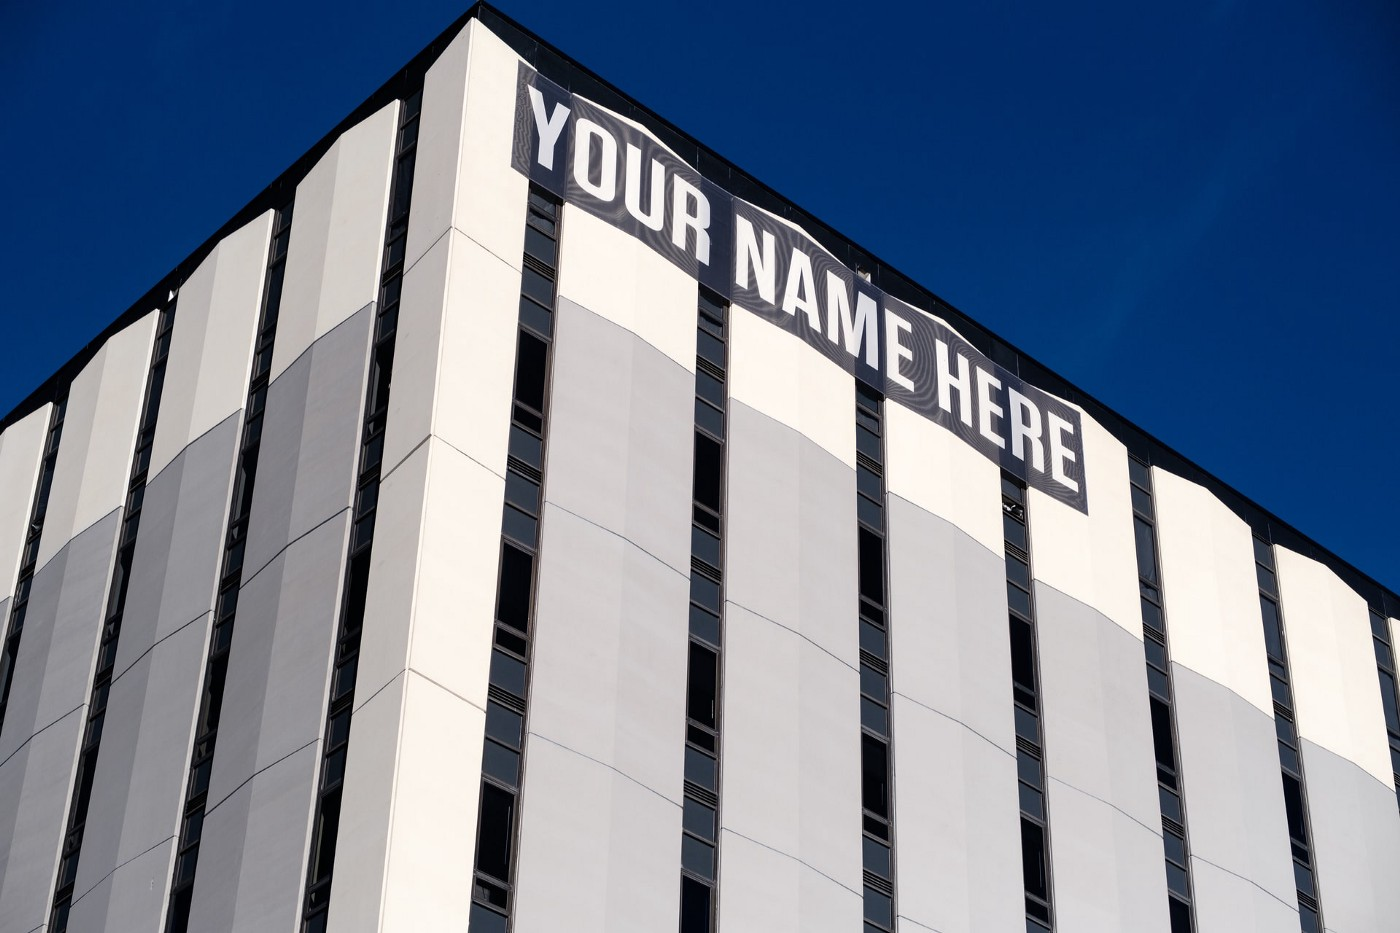 """A building with """"your name here"""" in the space where a company name should be."""